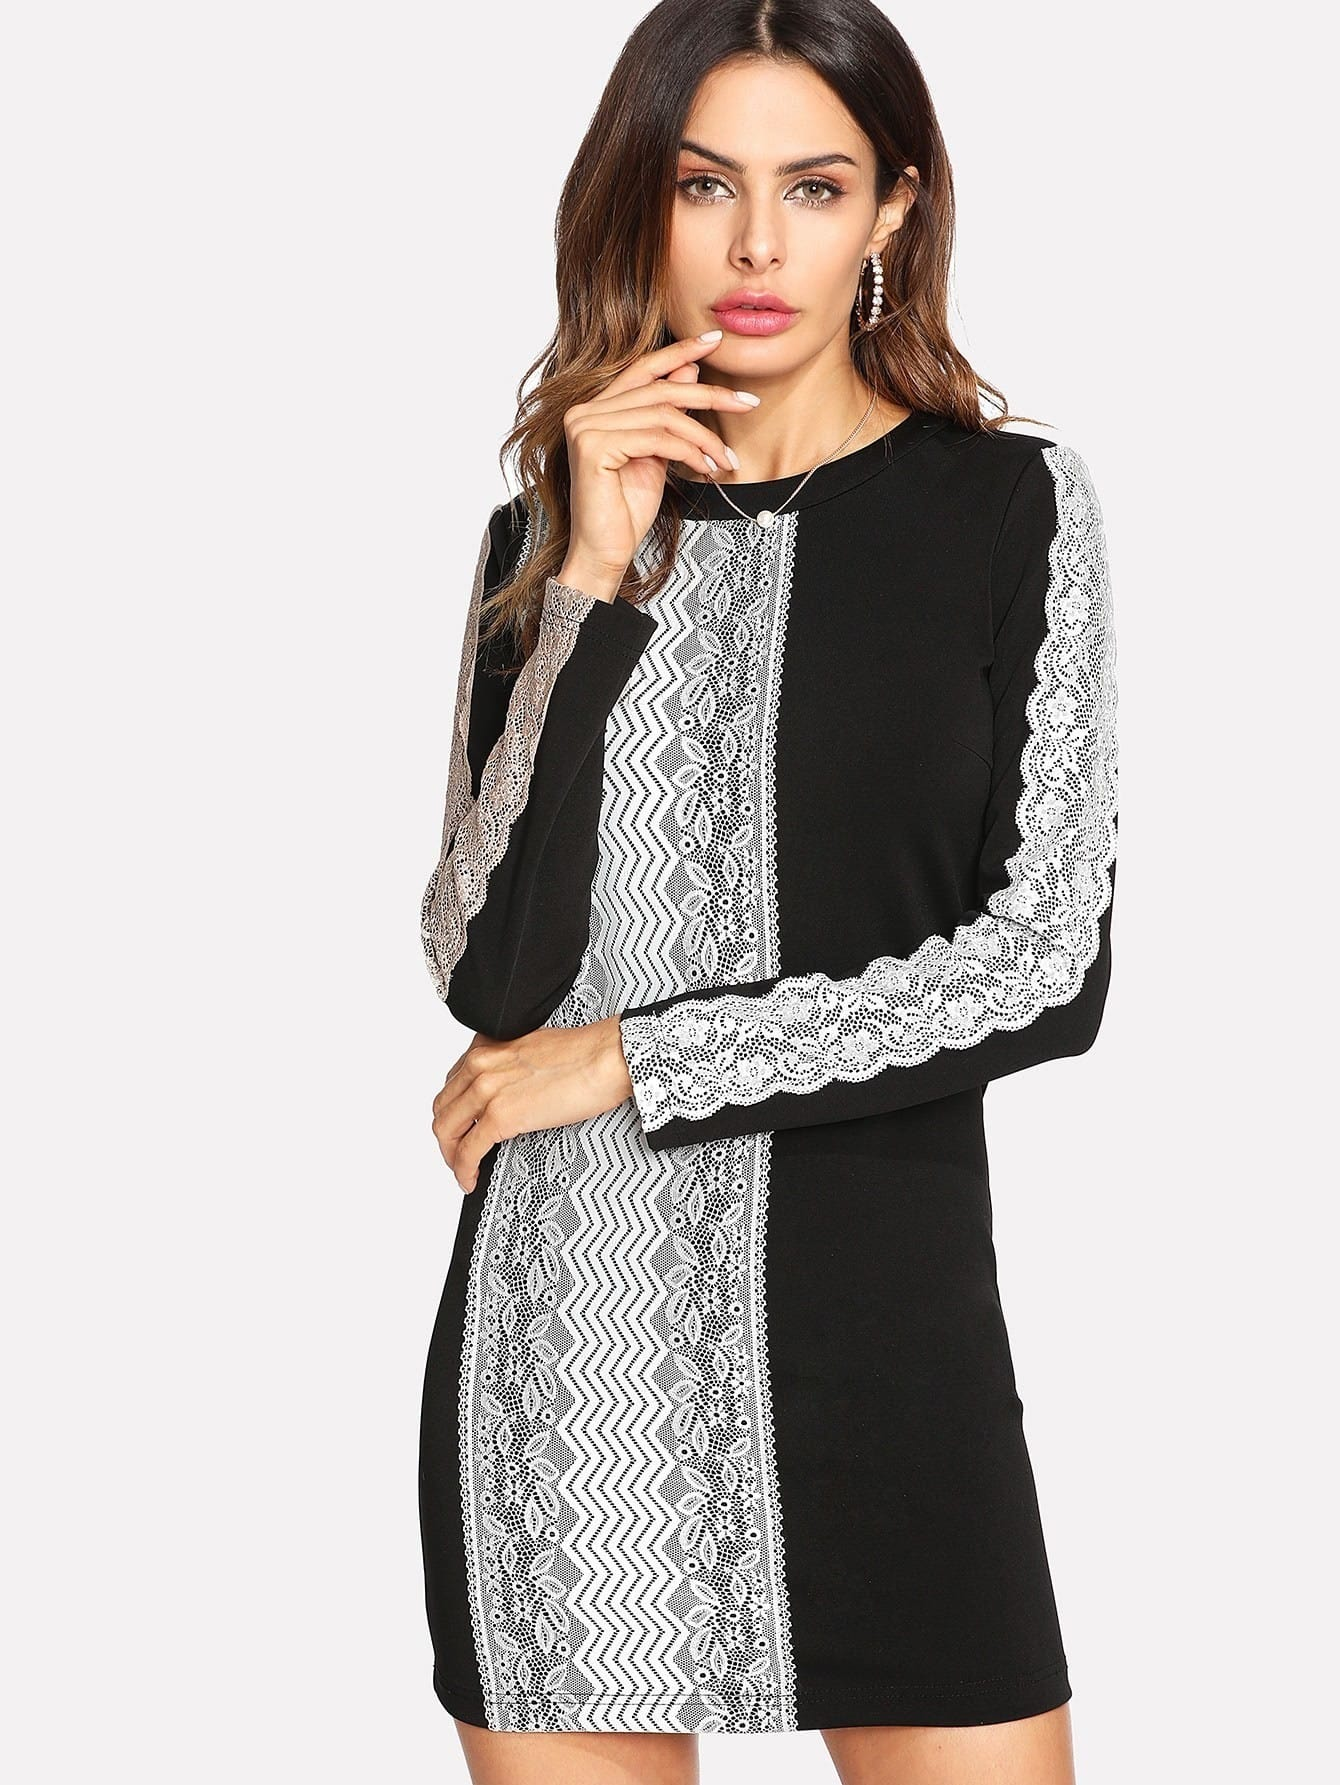 Contrast Lace Applique Fitted Dress Andy Black And White